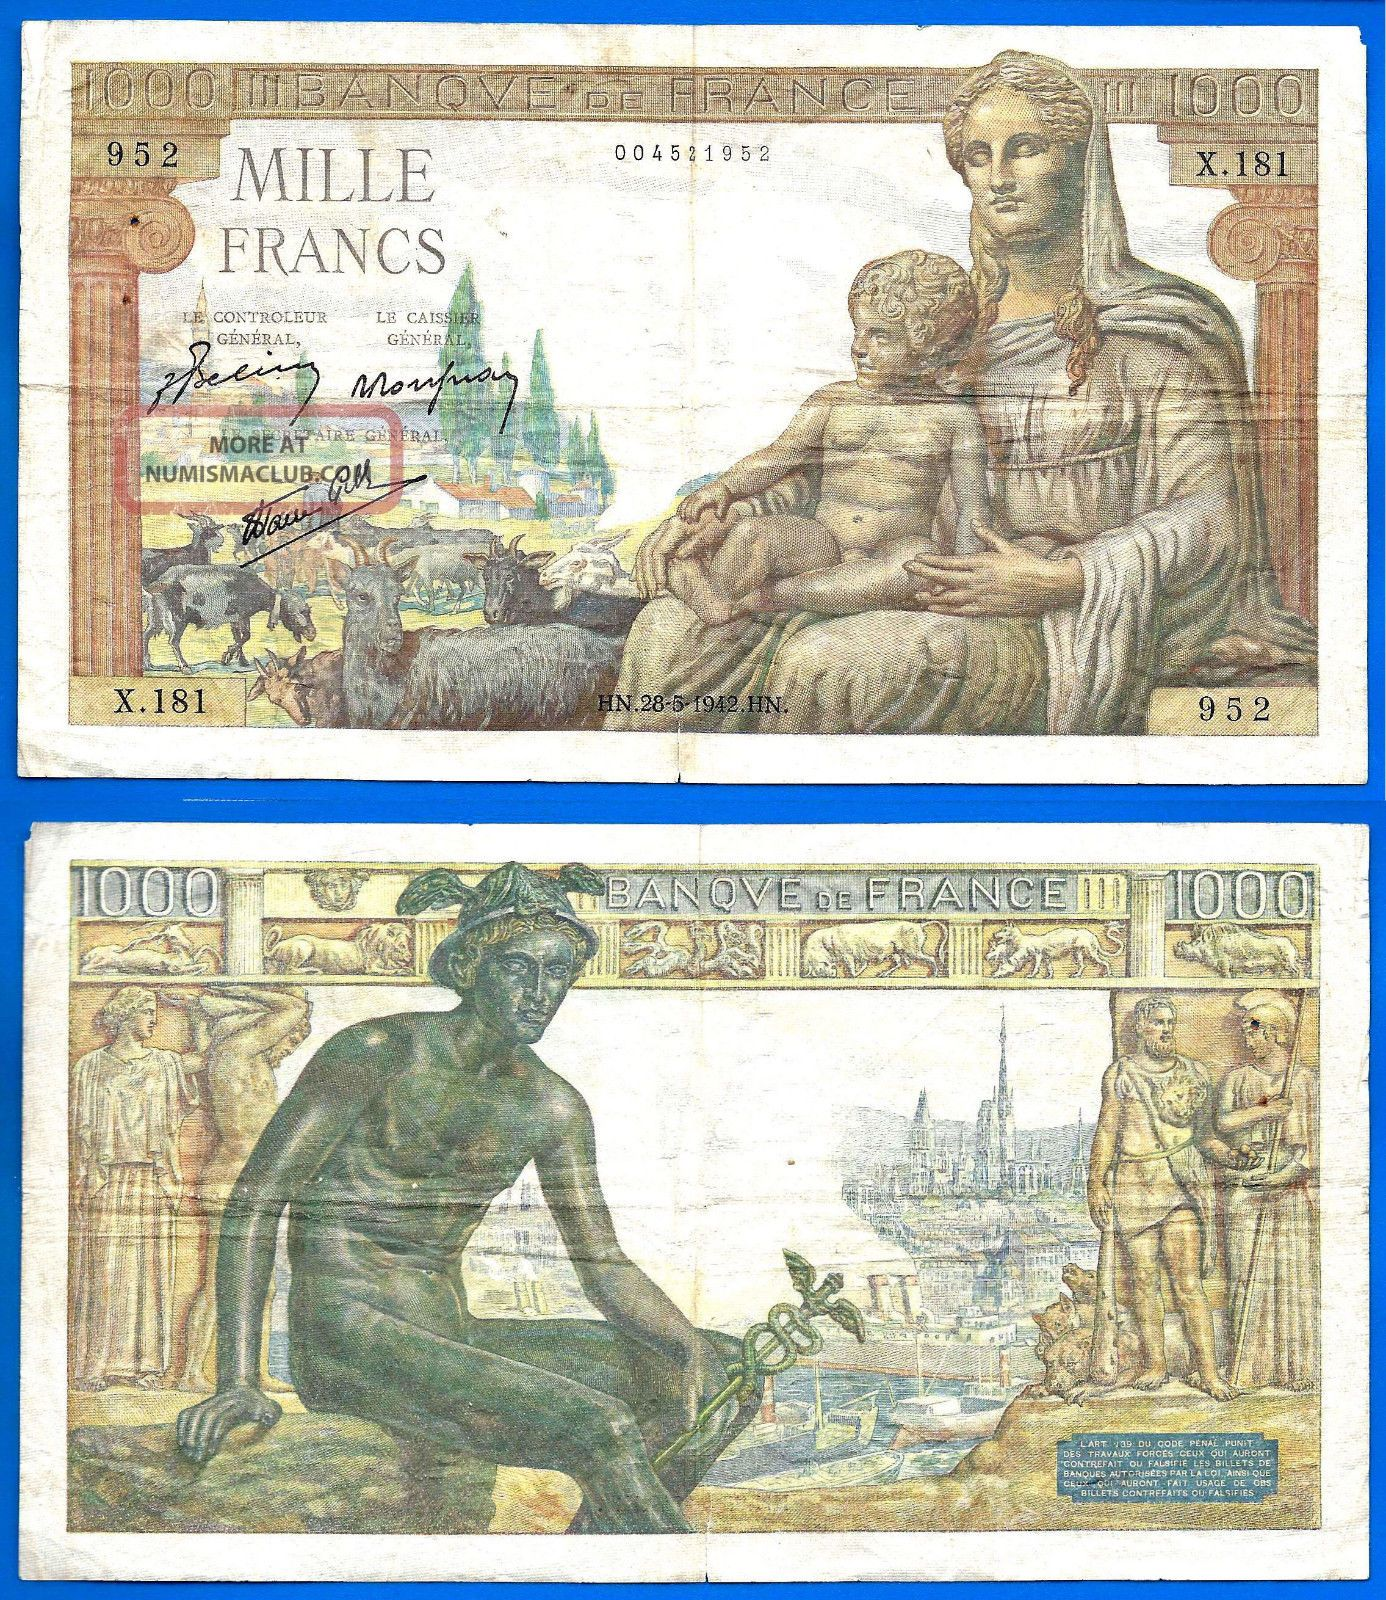 France 1000 Francs 1942 Demeter Serie X Great Bill Europe Frc Frcs Wld Europe photo